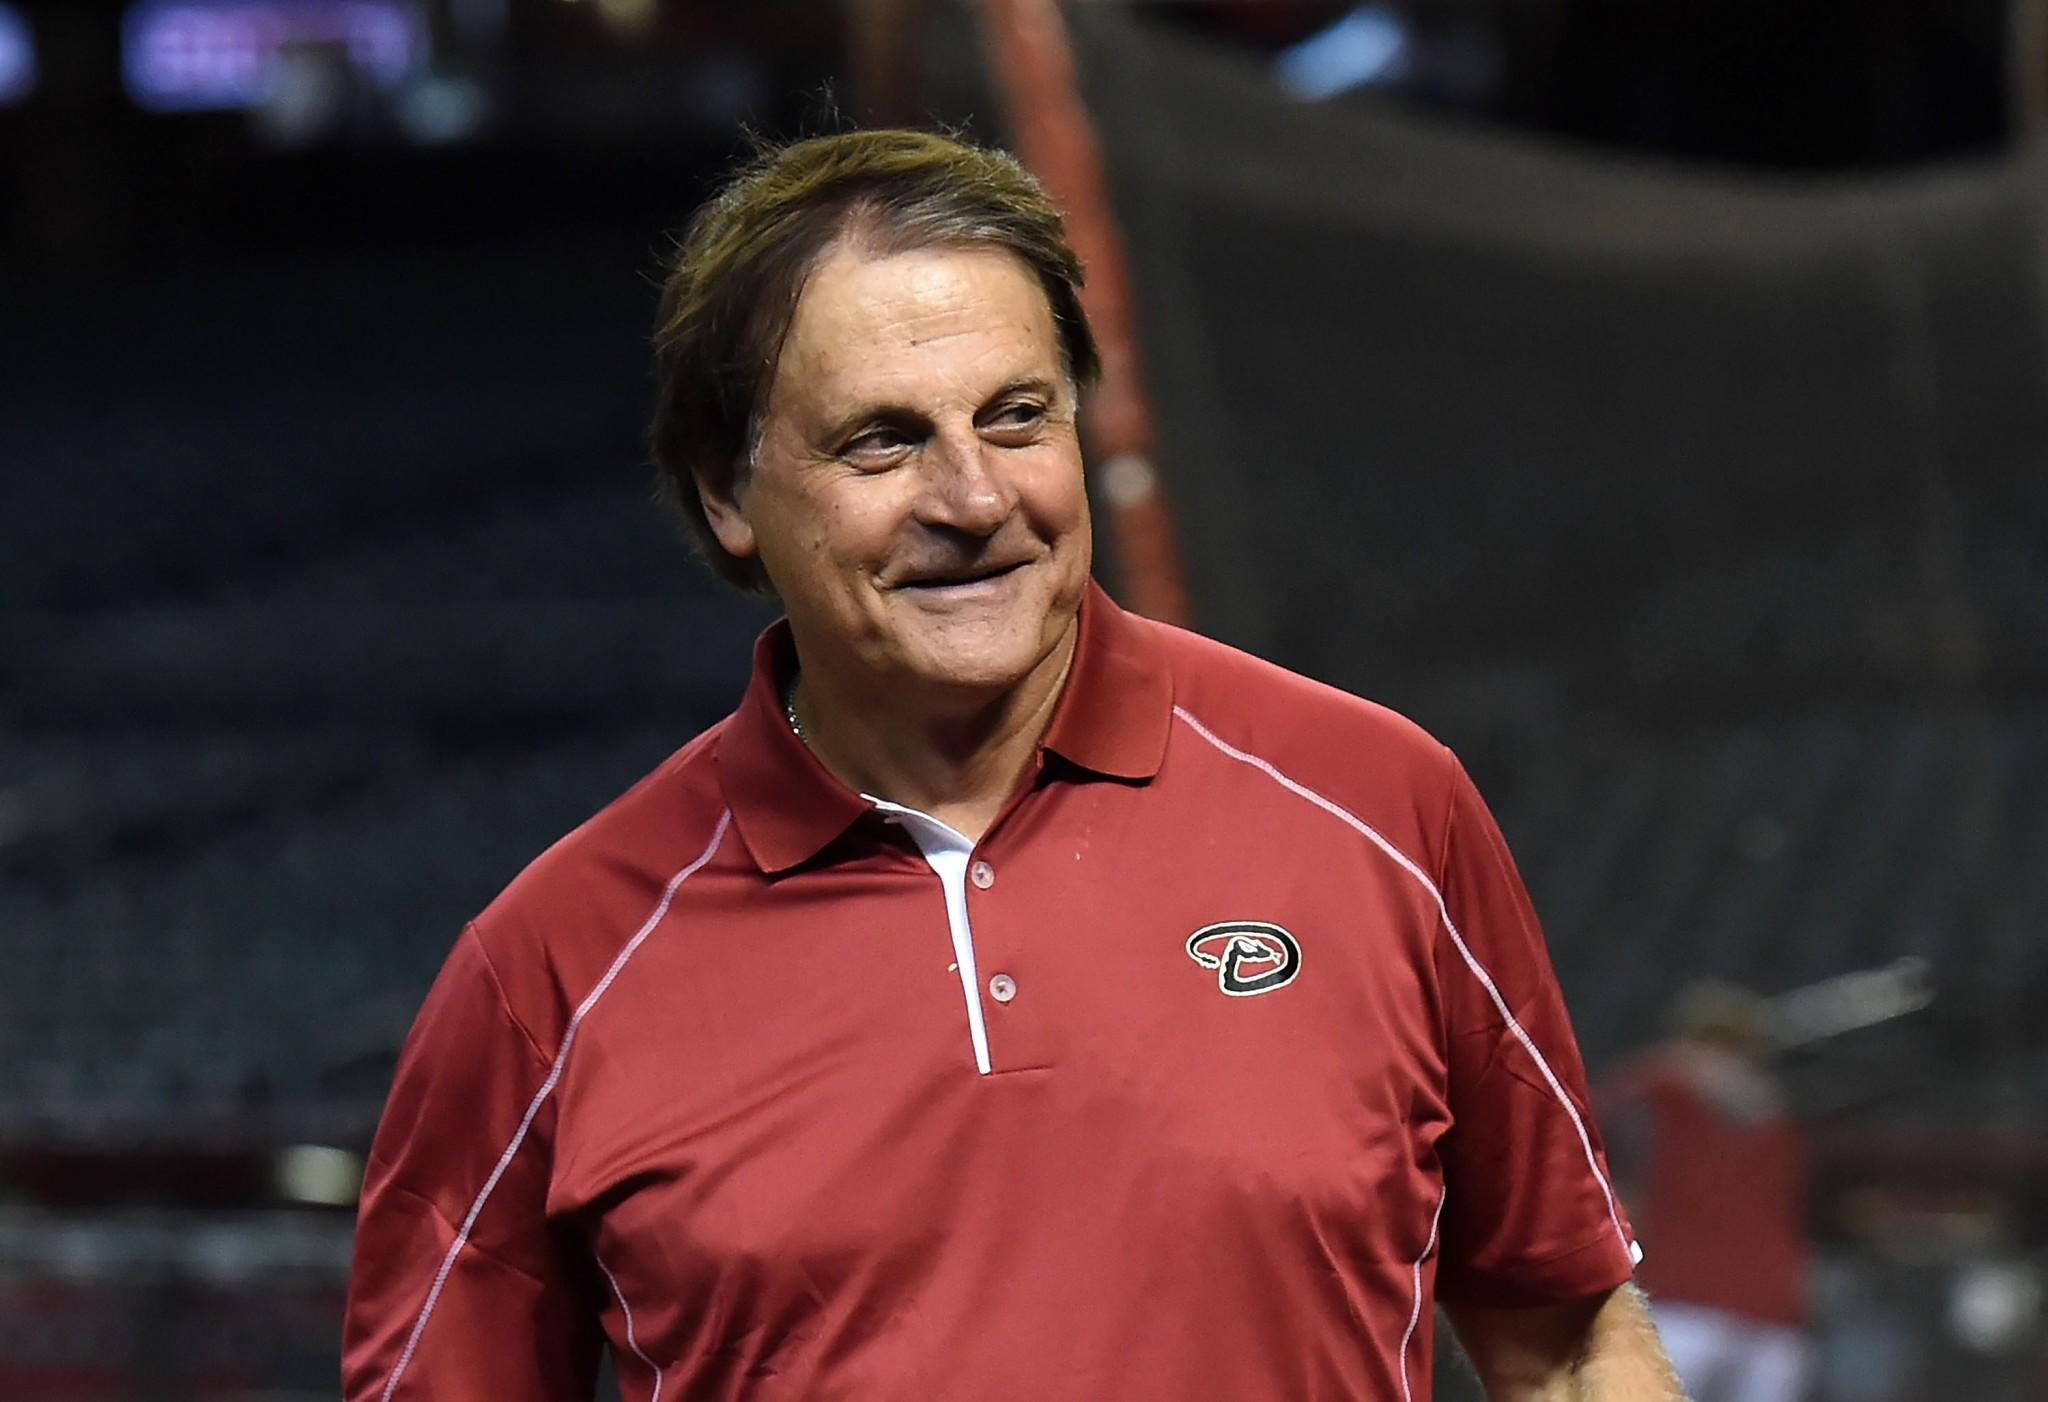 The Hypocrisy Of Tony La Russa And The Understandable Fears Of Black Baseball Players